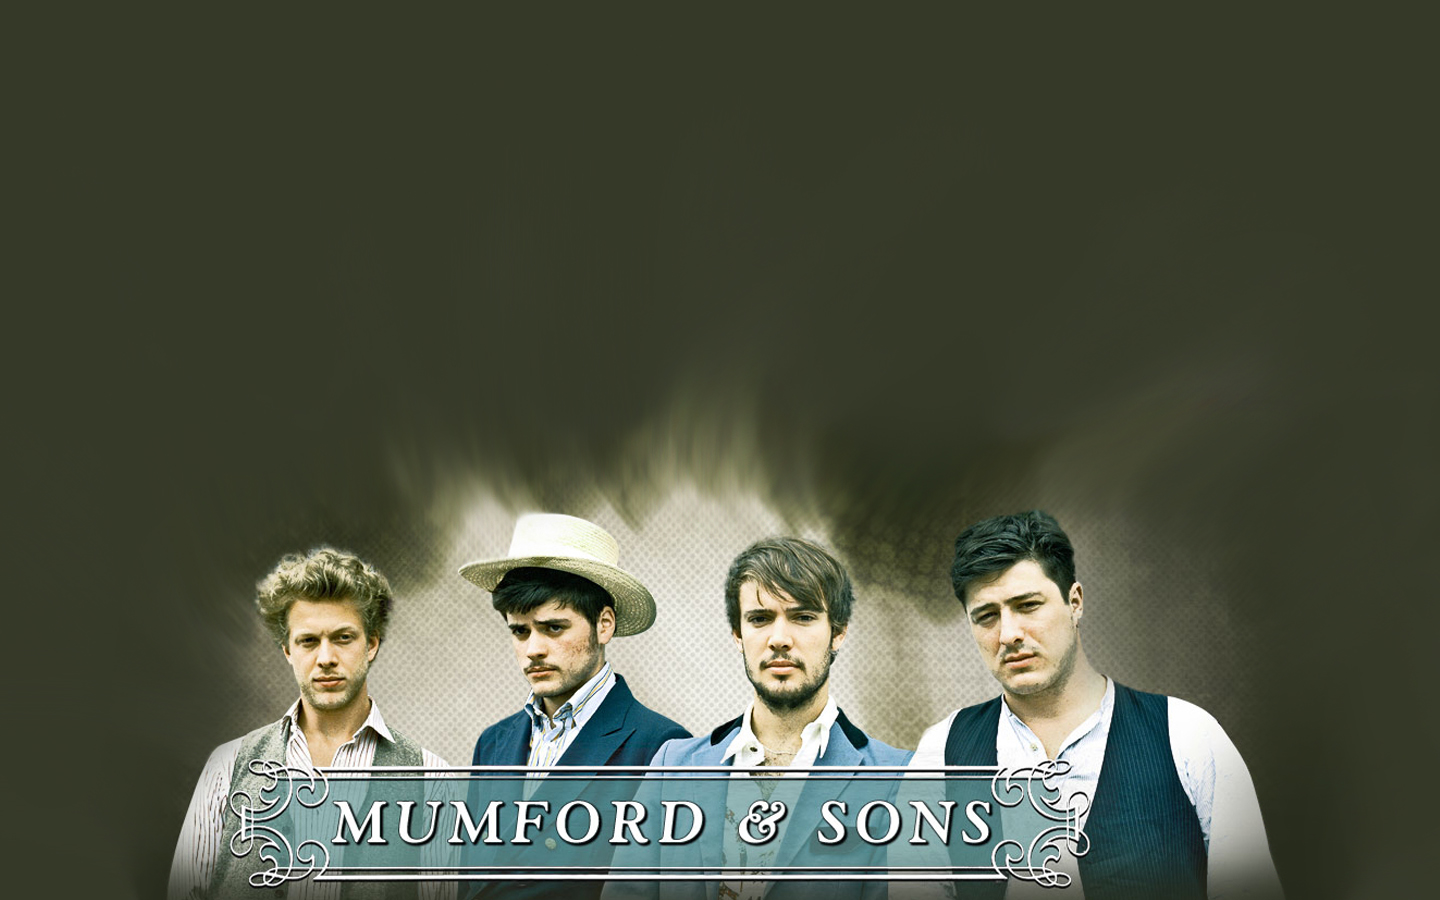 Mumford and Sons by AwesomeMcBear Mumford and Sons by AwesomeMcBear